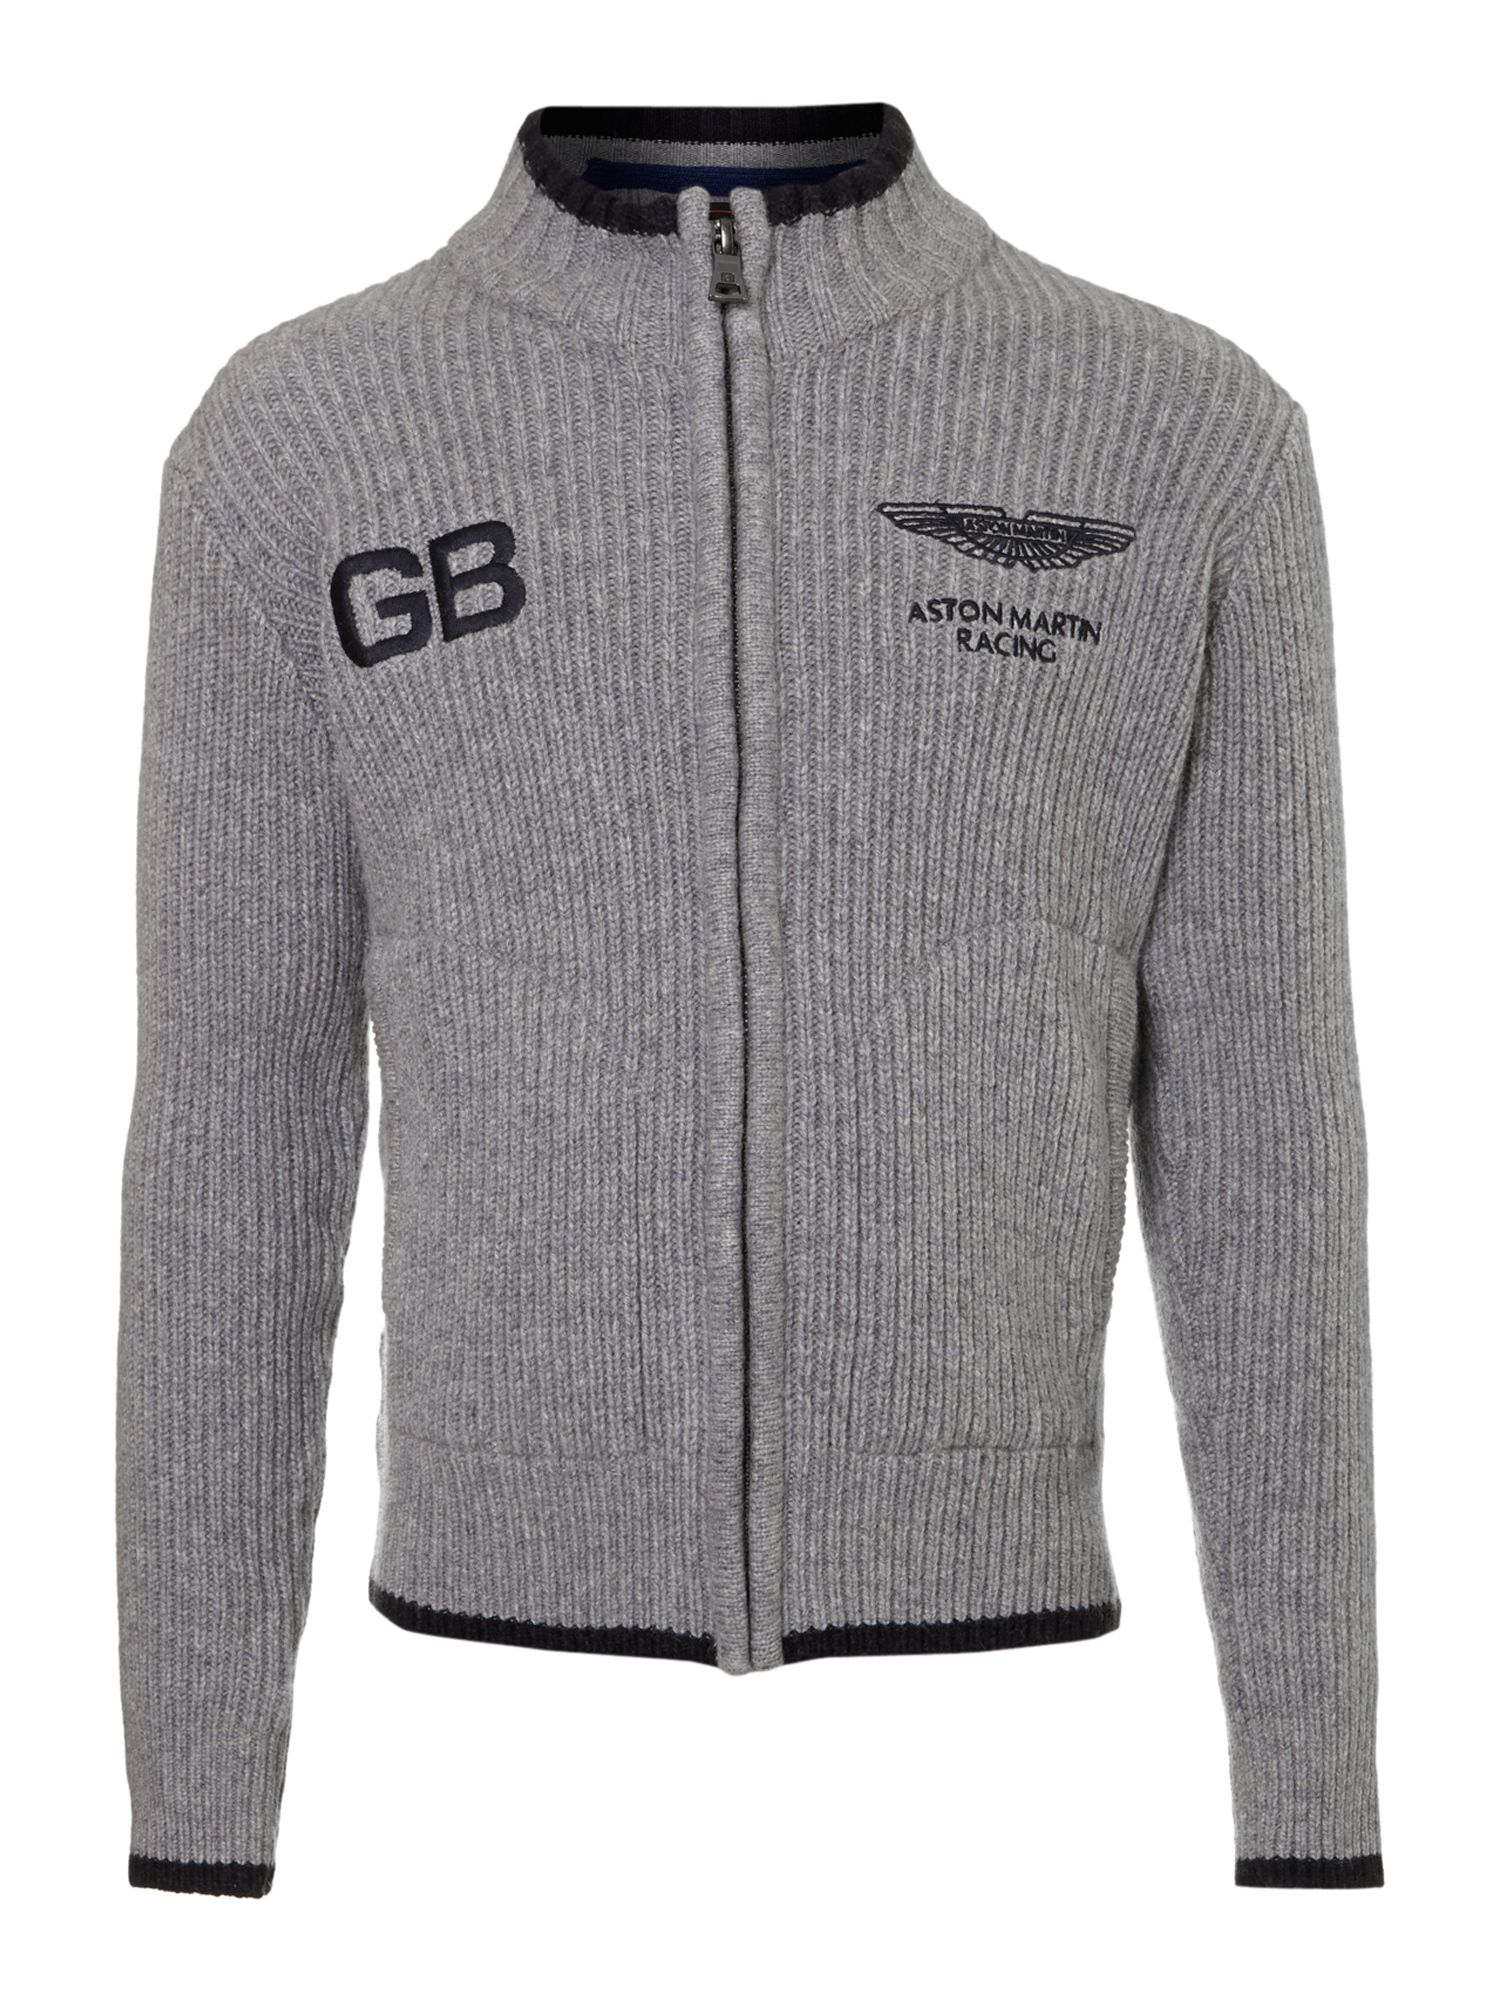 Boy`s Aston Martin zip-thru jumper